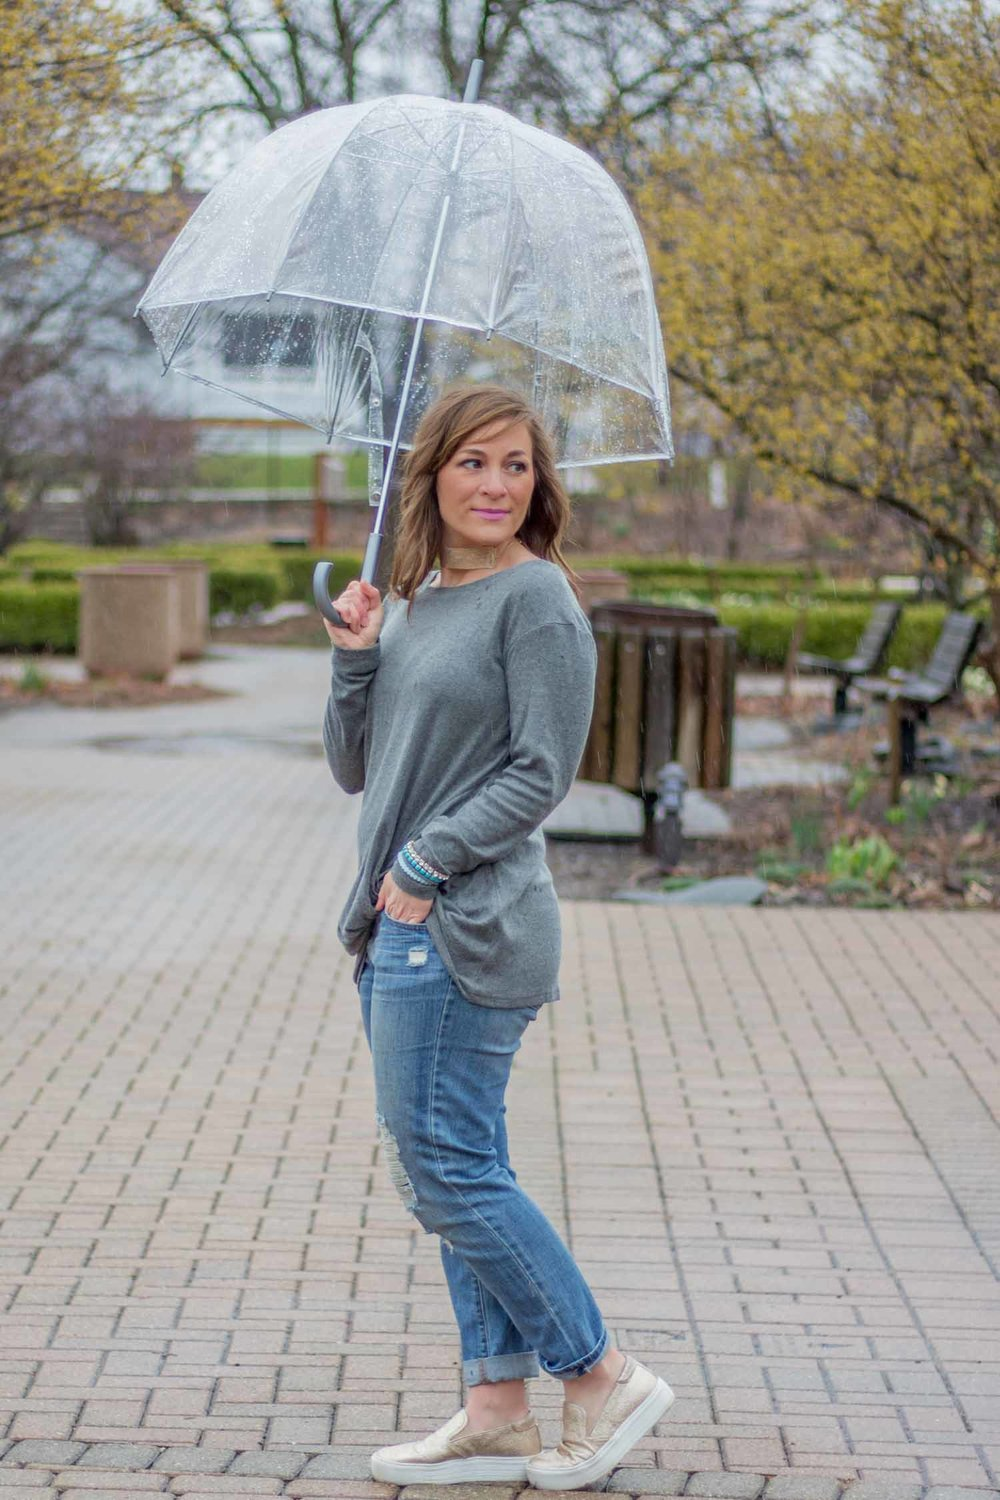 Rainy Day Outfit for Spring.jpg